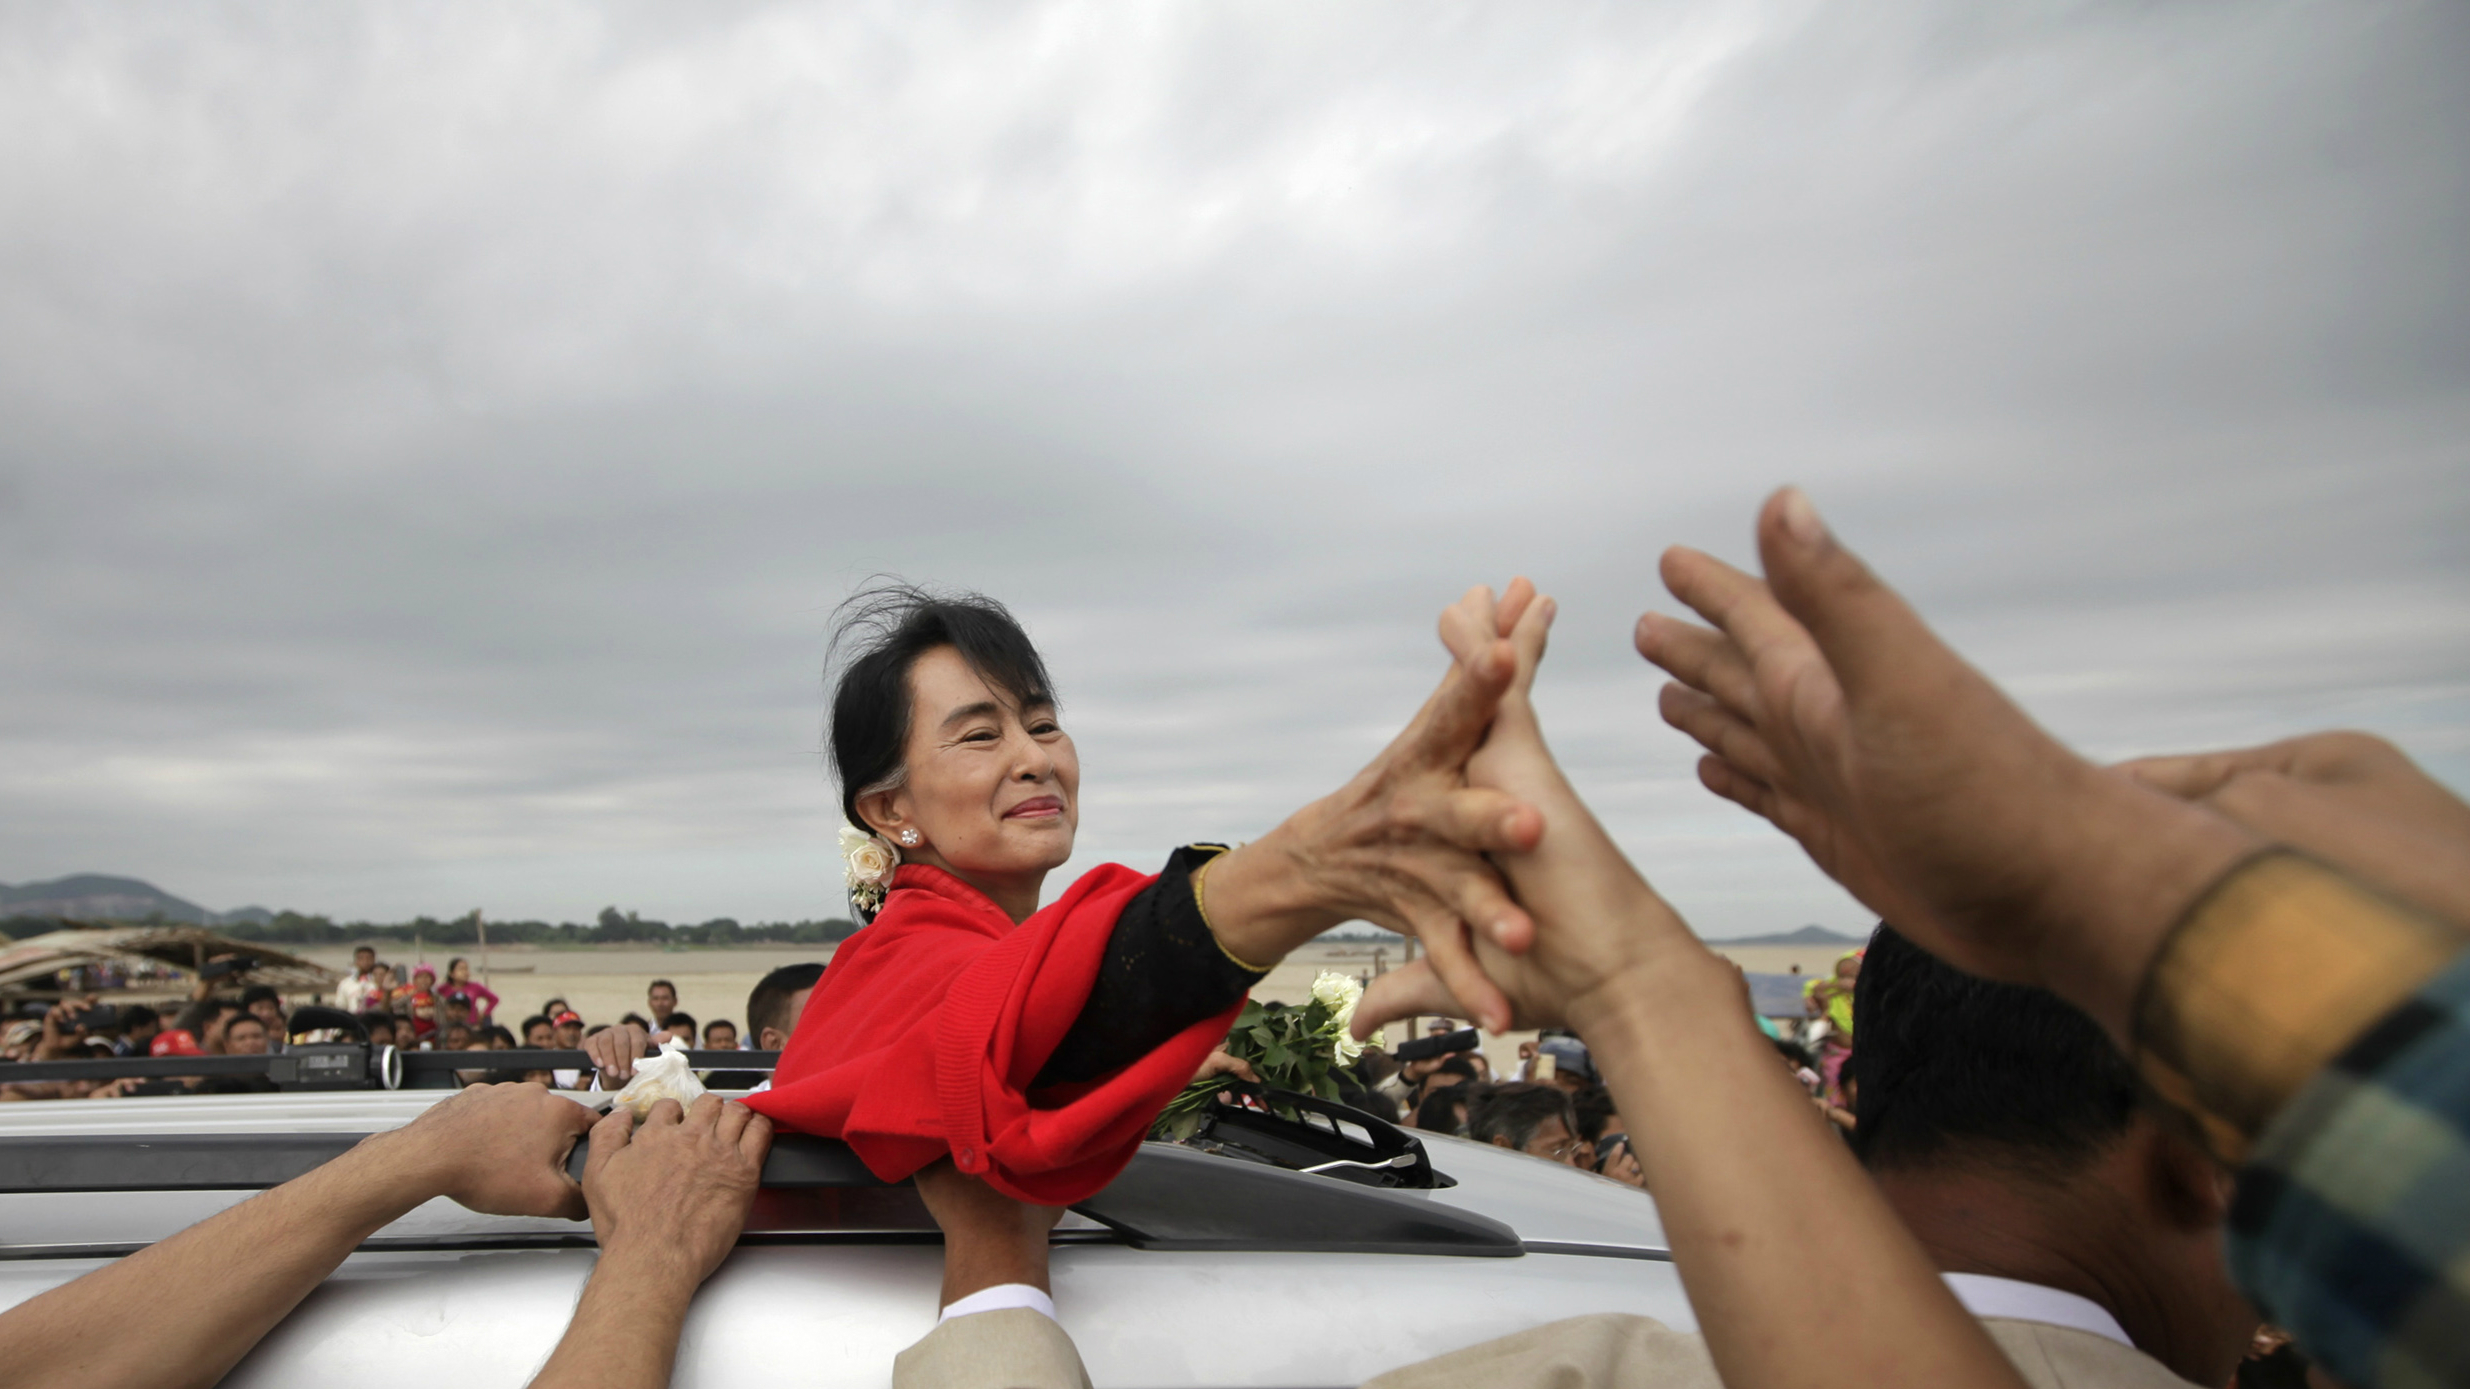 Myanmar pro-democracy leader Aung San Suu Kyi shakes hands with supporters after giving a speech in Monywa November 30, 2012. Suu Kyi offered to mediate between company officials and those who are opposing a vast copper mining project after riot police fired water cannon and tear gas on Thursday to break up a three-month protest against the project run by the powerful Myanmar military and its partner, a subsidiary of a Chinese arms manufacturer. Activists said at least 50 people had been injured and 23 were in hospital, some suffering burns after incendiary devices were hurled into their camps by police.